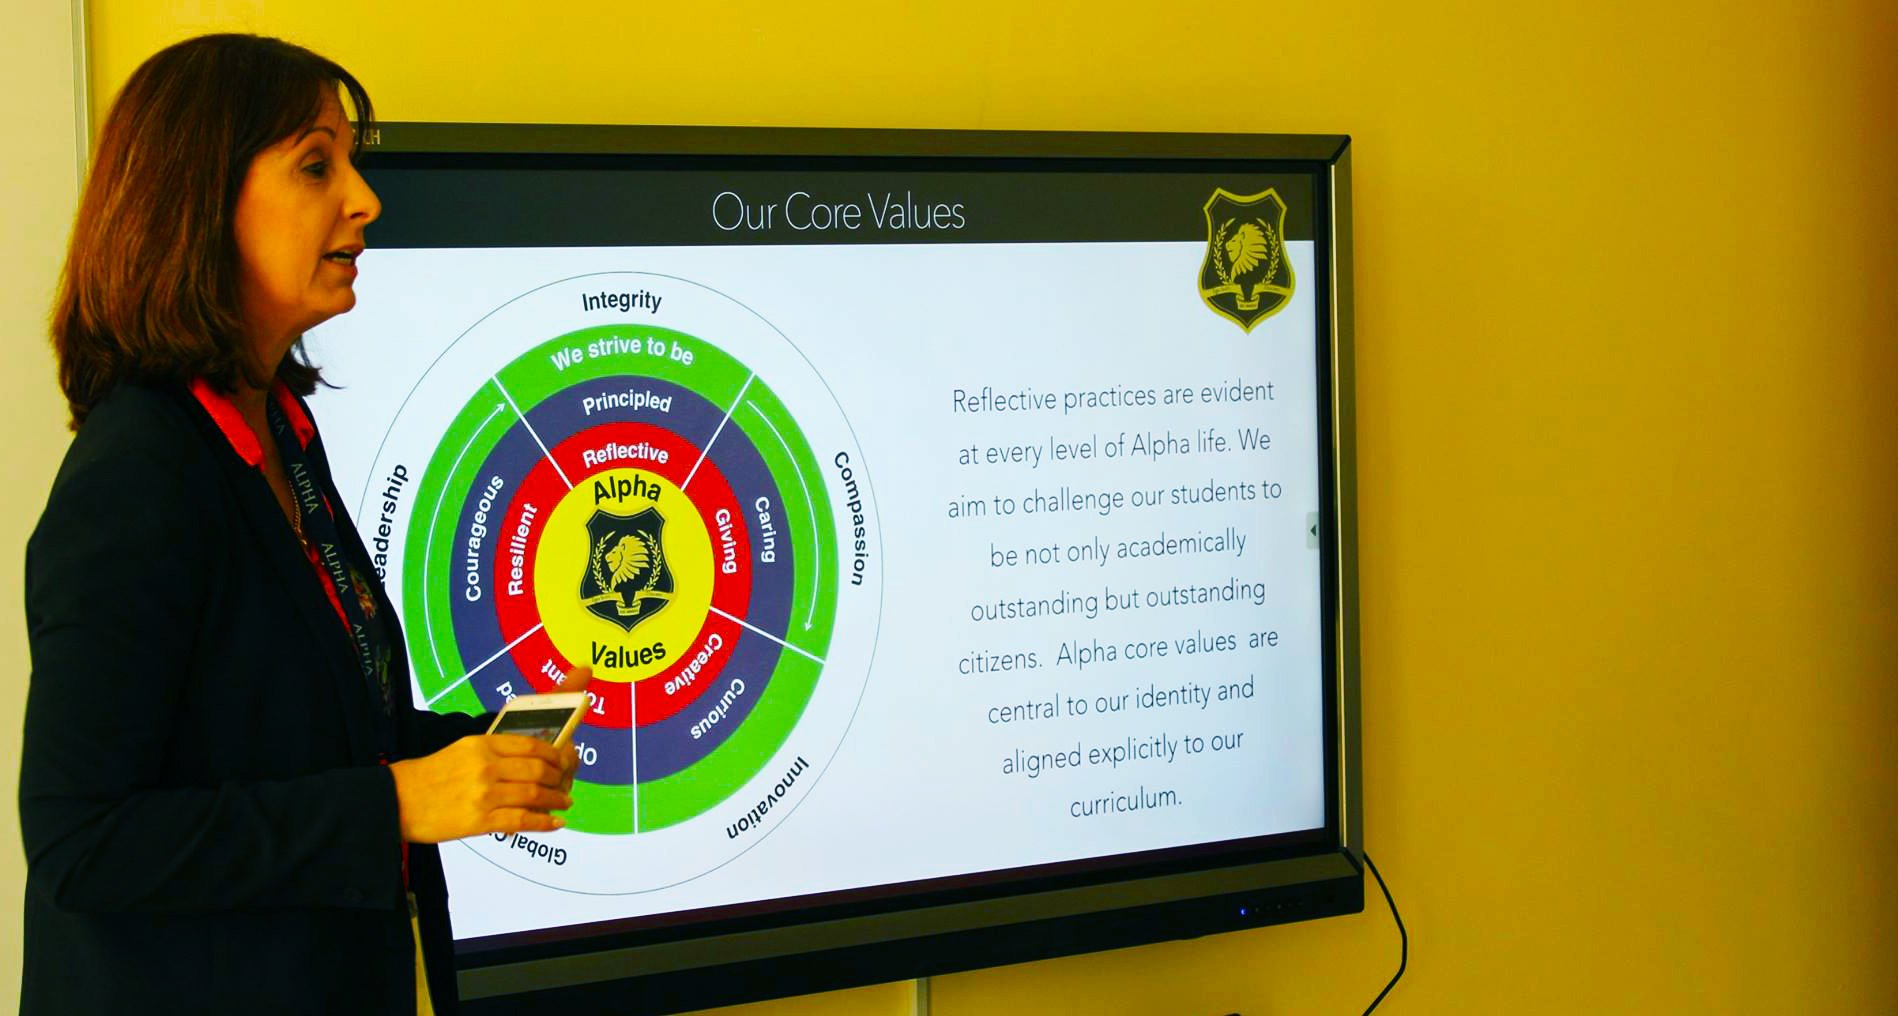 School Principal at the Alpha School in Dubai dicussing the school's values and approach with parents